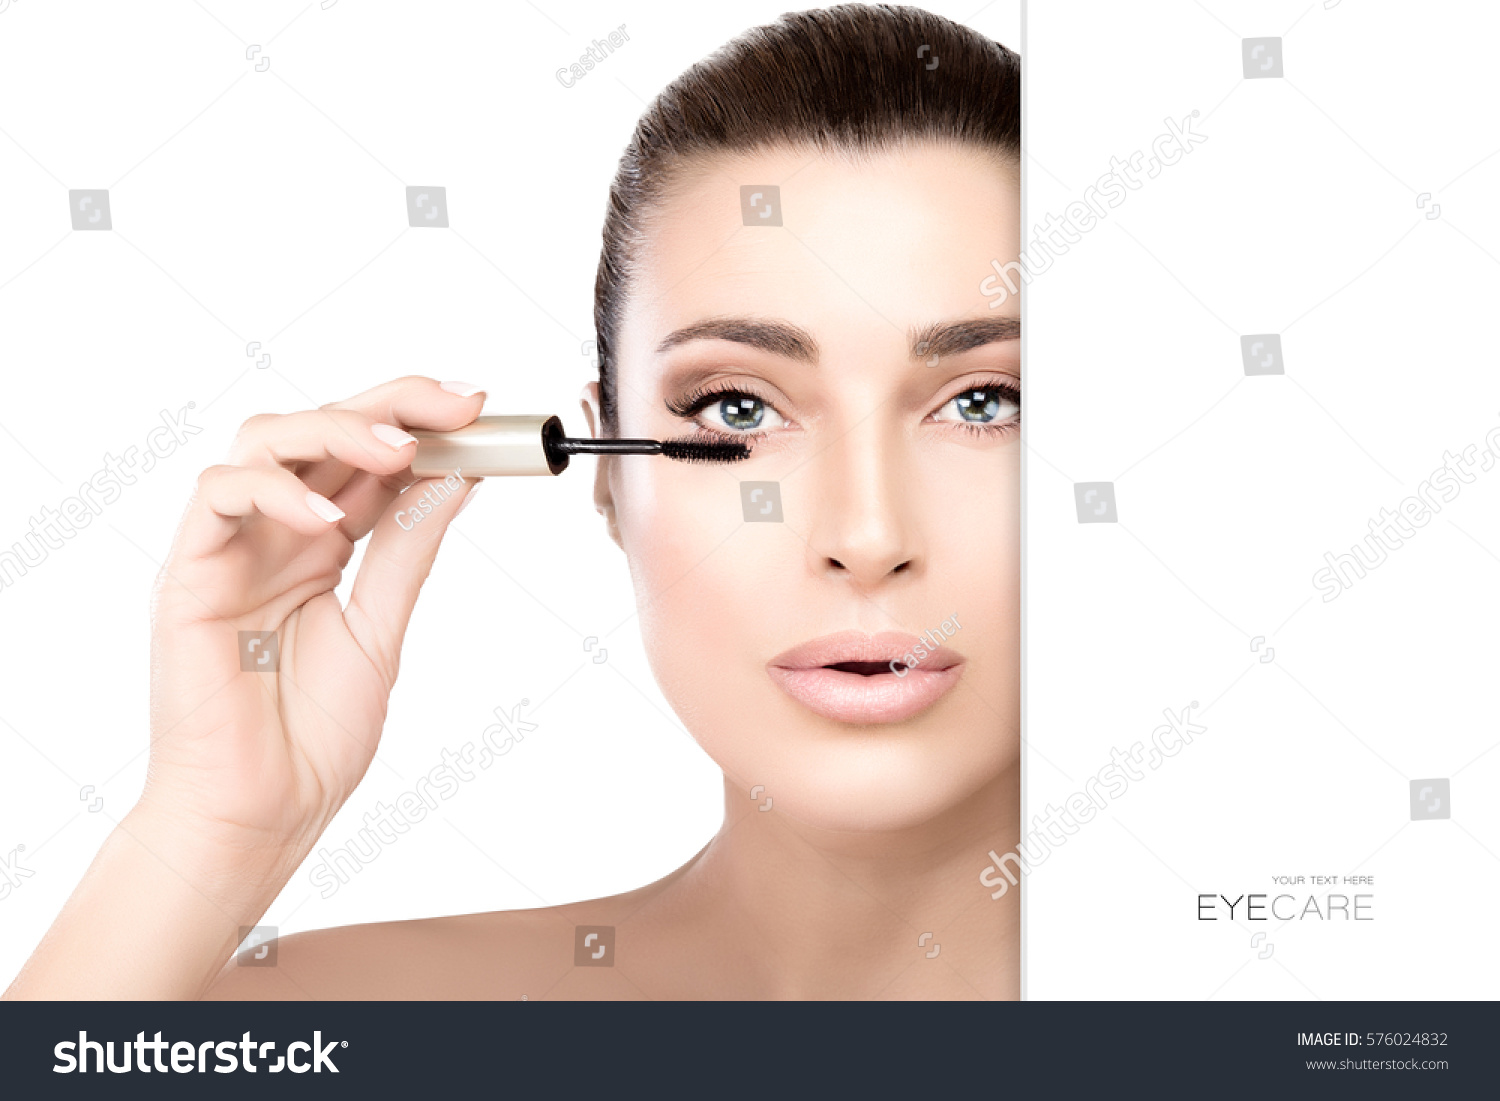 Gorgeous Beauty Model With Bright Makeup Applying Mascara To Her